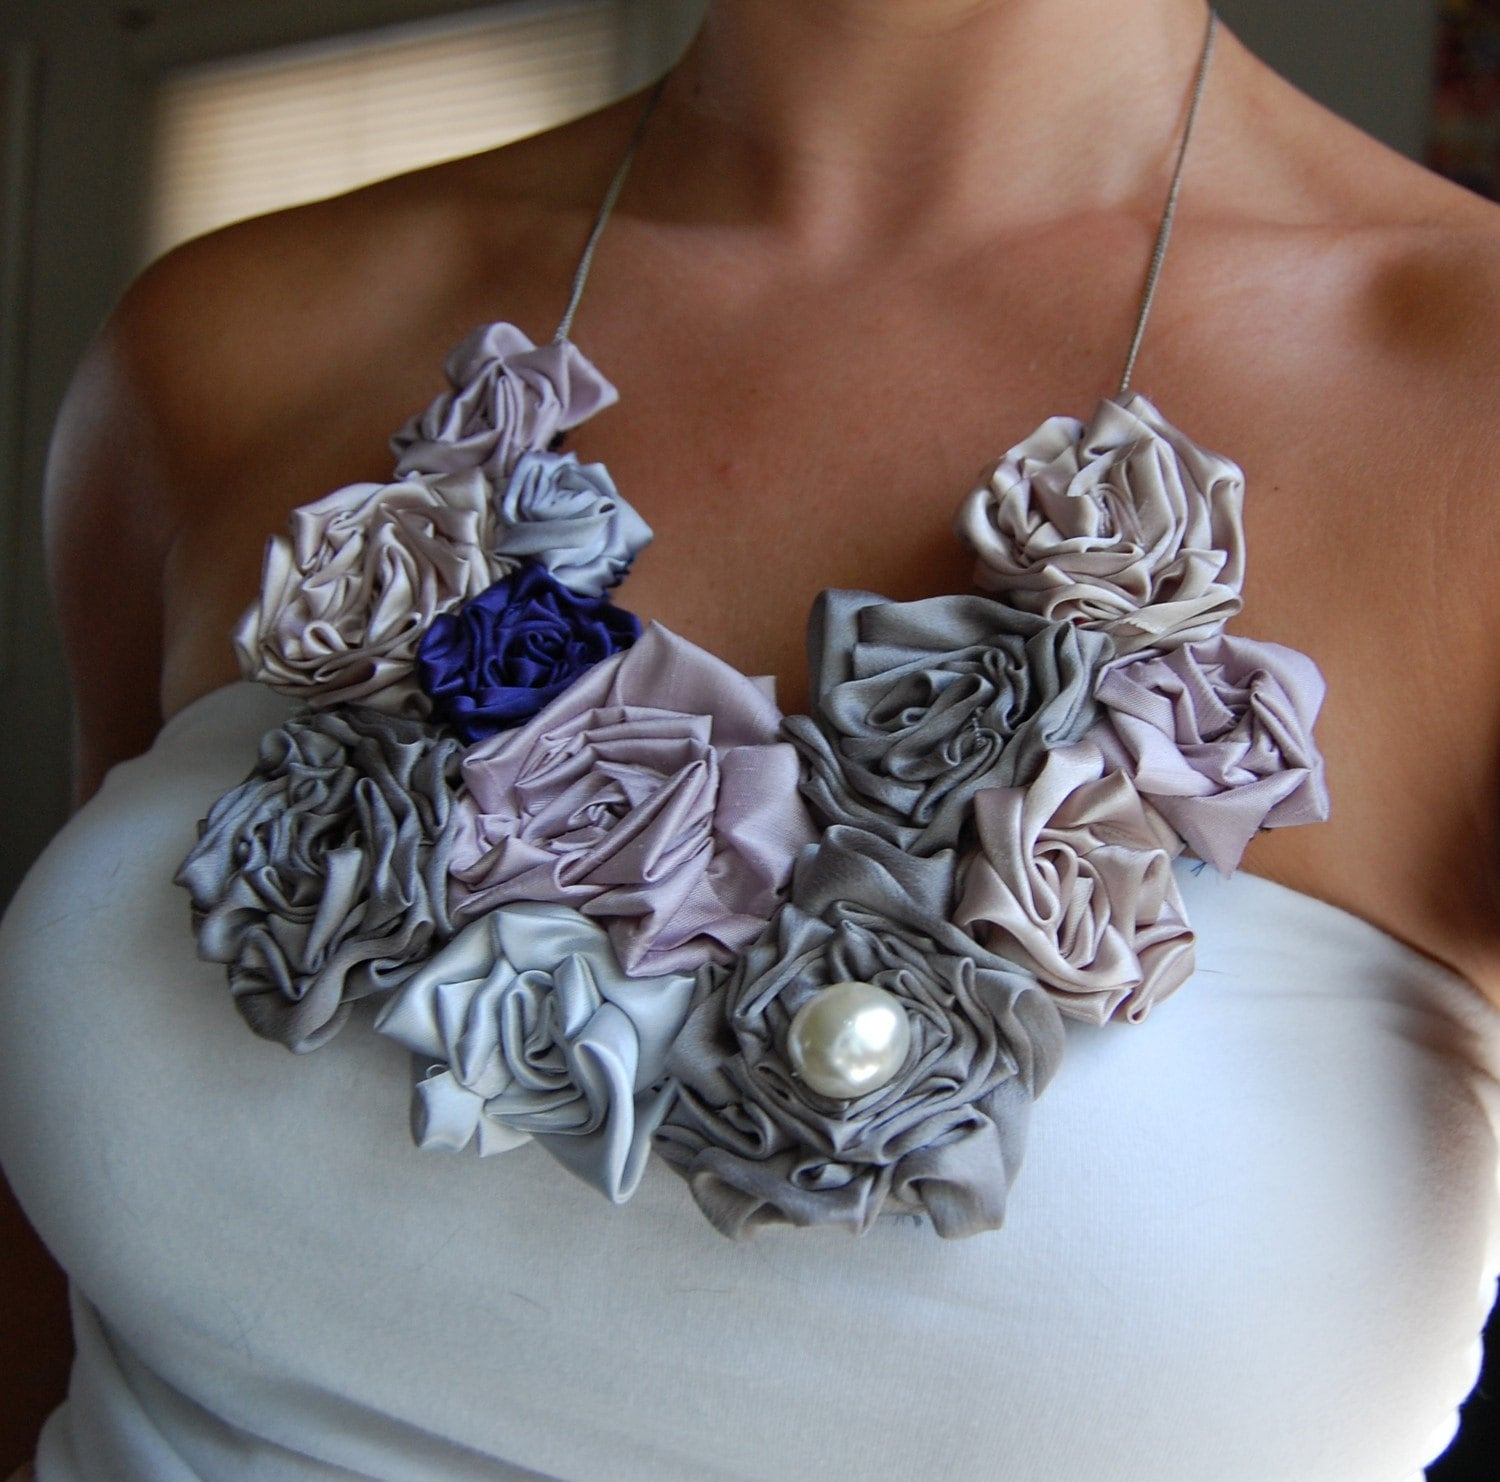 Shades of Gray Bouquet Necklace with Pearl detail